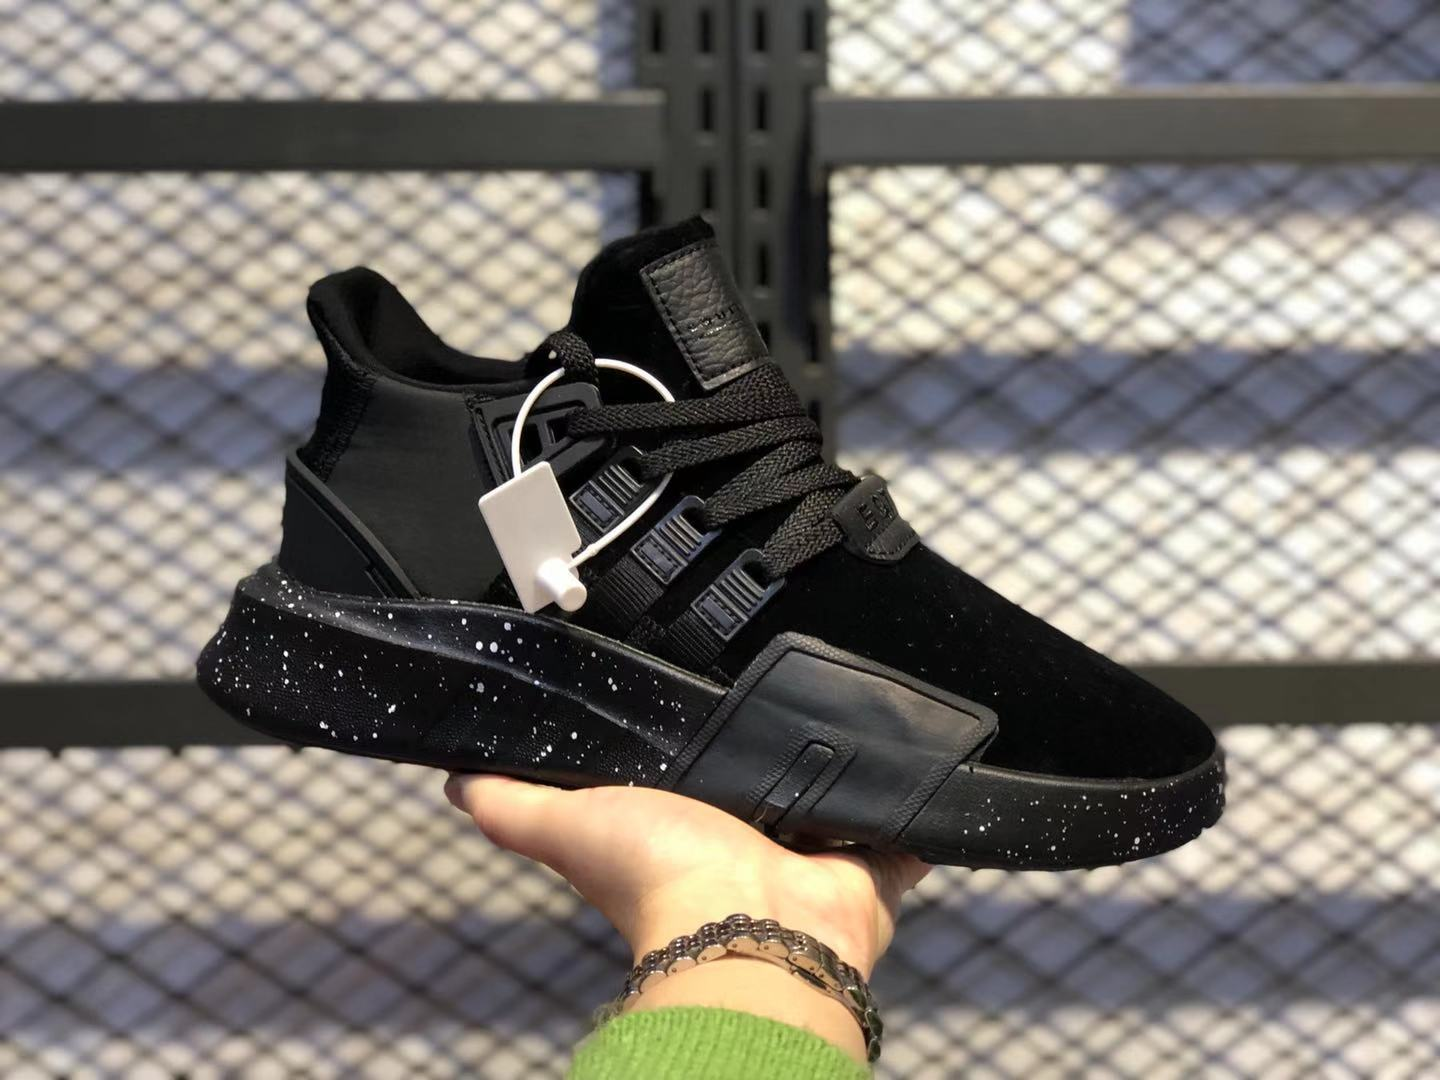 Adidas EQT Basketball ADV Core Black/Anthracite BD7813 For Online Sale